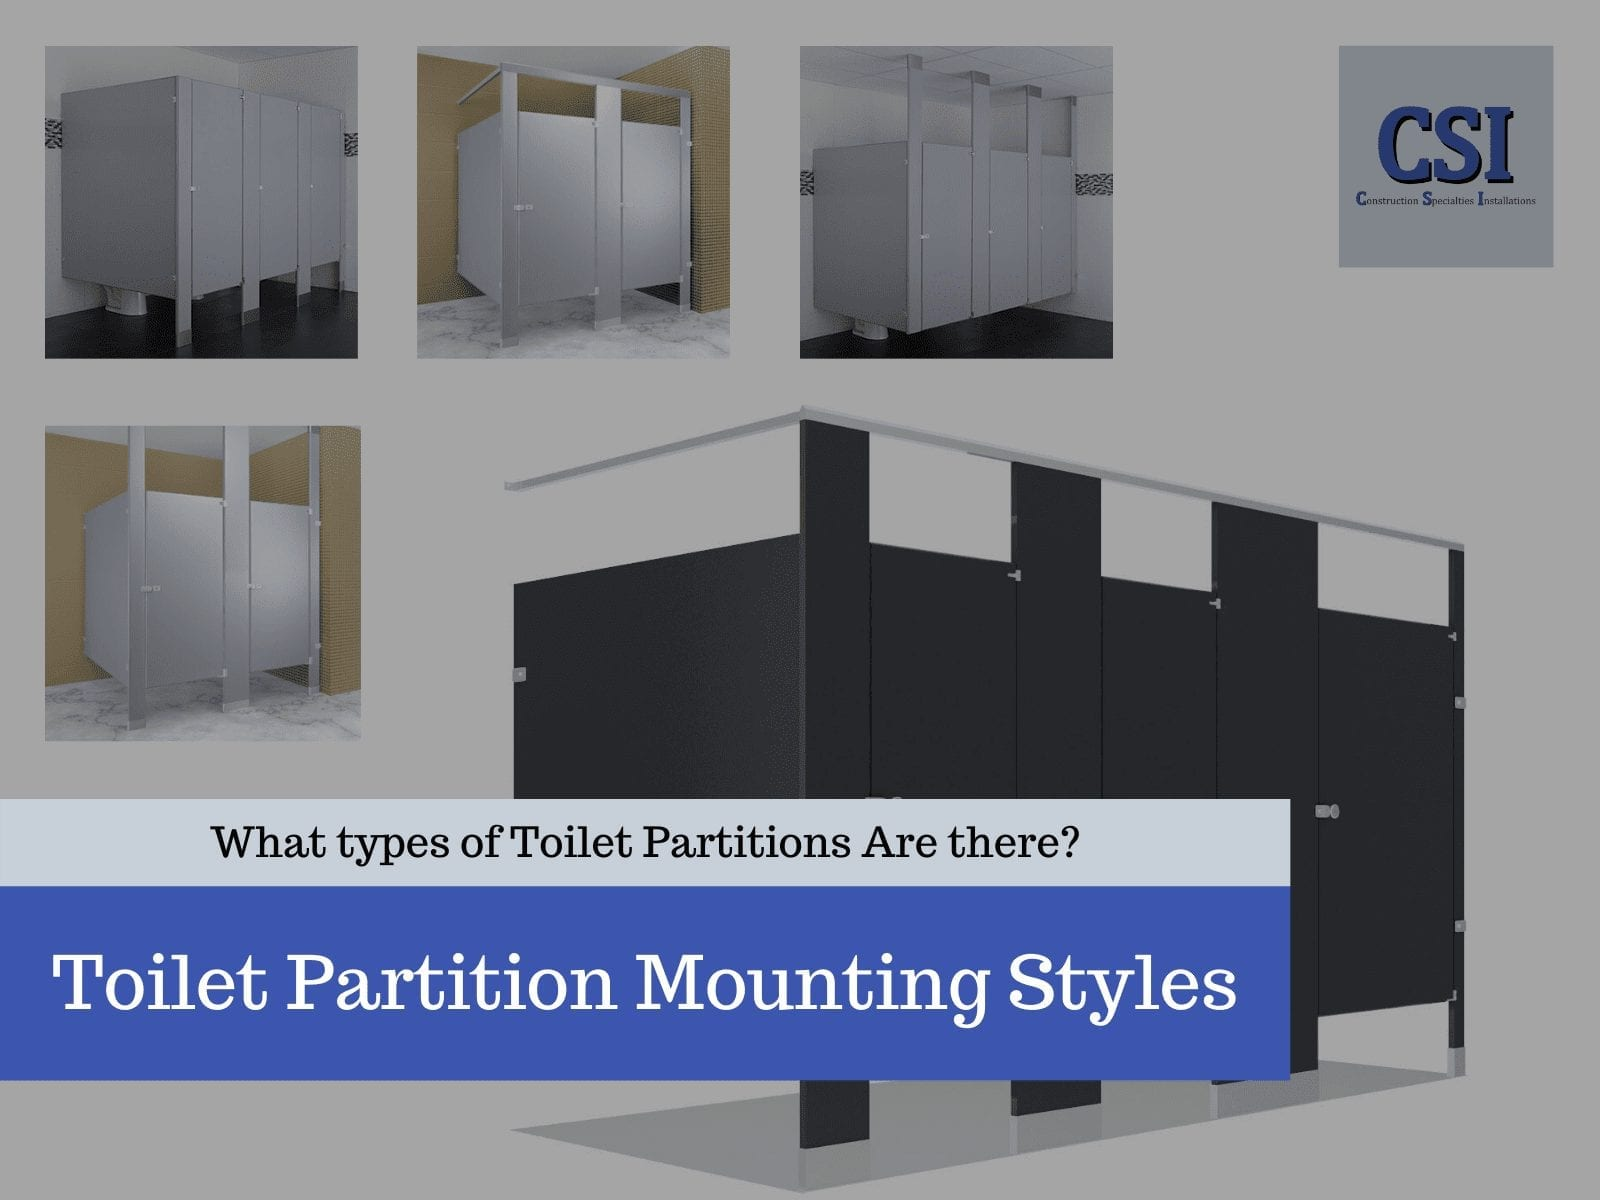 Toilet Partition Mounting Styles